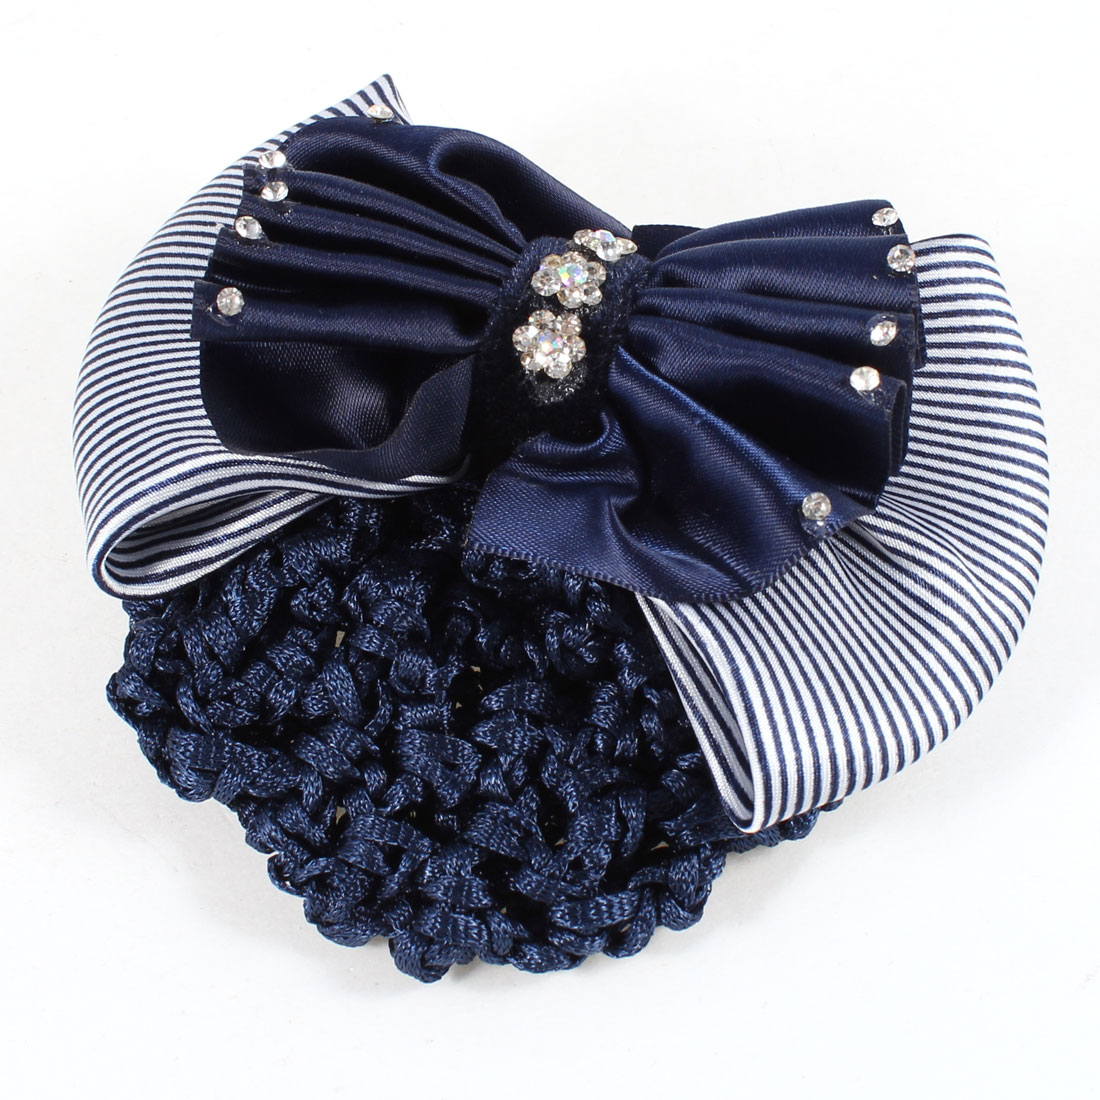 Rhinestones Inlaid Ruched Bowknot Snood Net Barrette Hair Clip Dark Blue